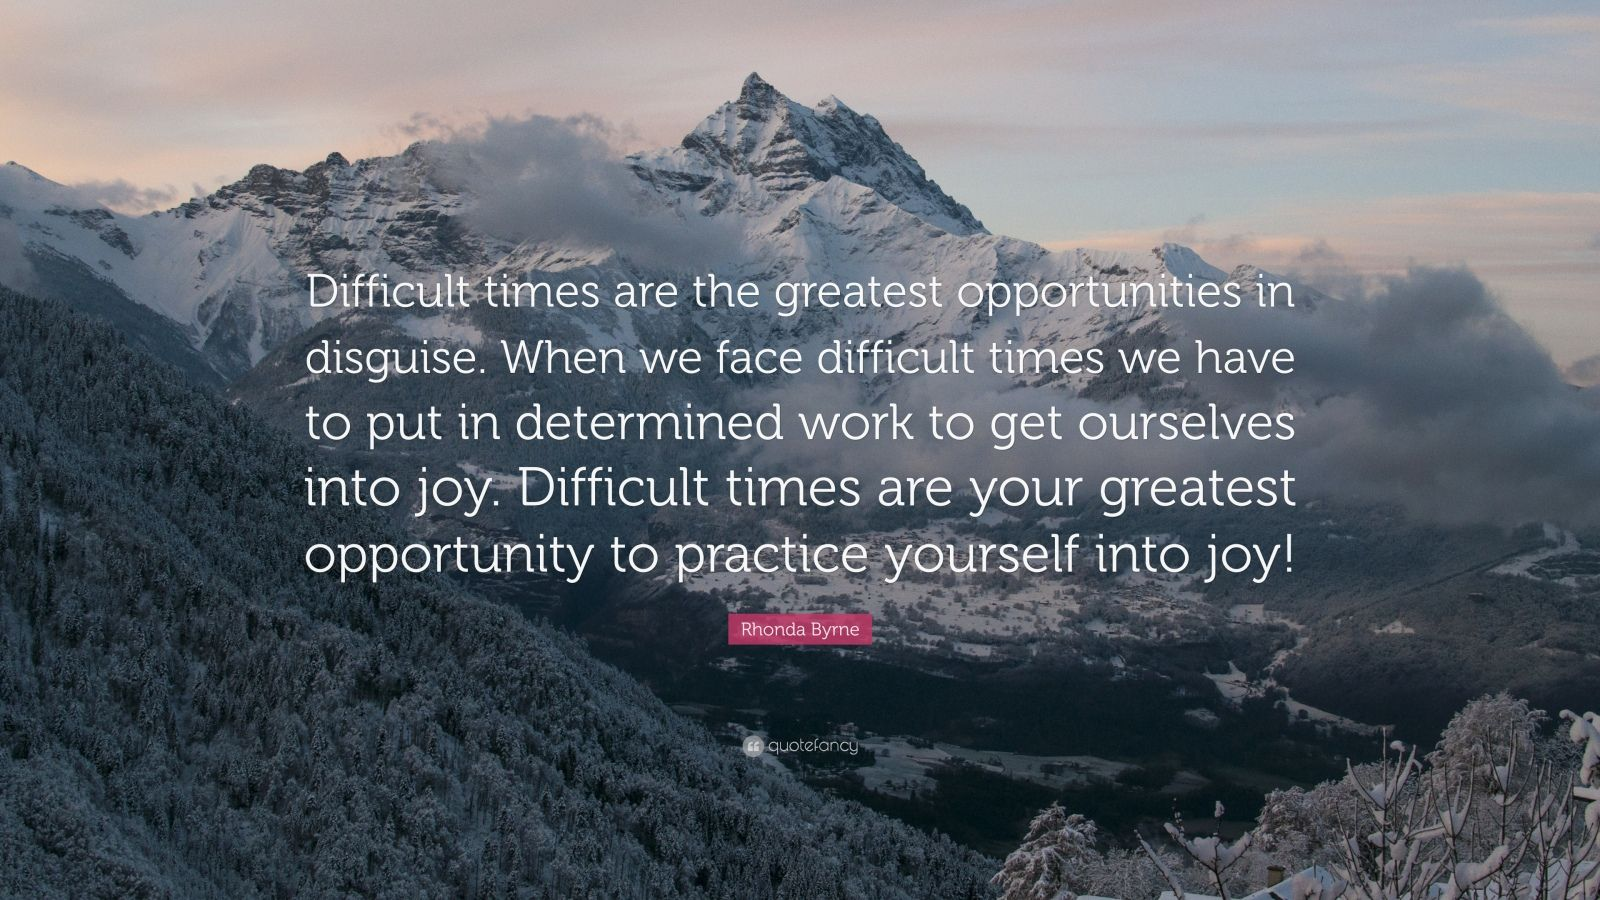 """Rhonda Byrne Quote: """"Difficult times are the greatest opportunities in disguise. When we face difficult times we have to put in determined work to get ourselves into joy. Difficult times are your greatest opportunity to practice yourself into joy!"""""""